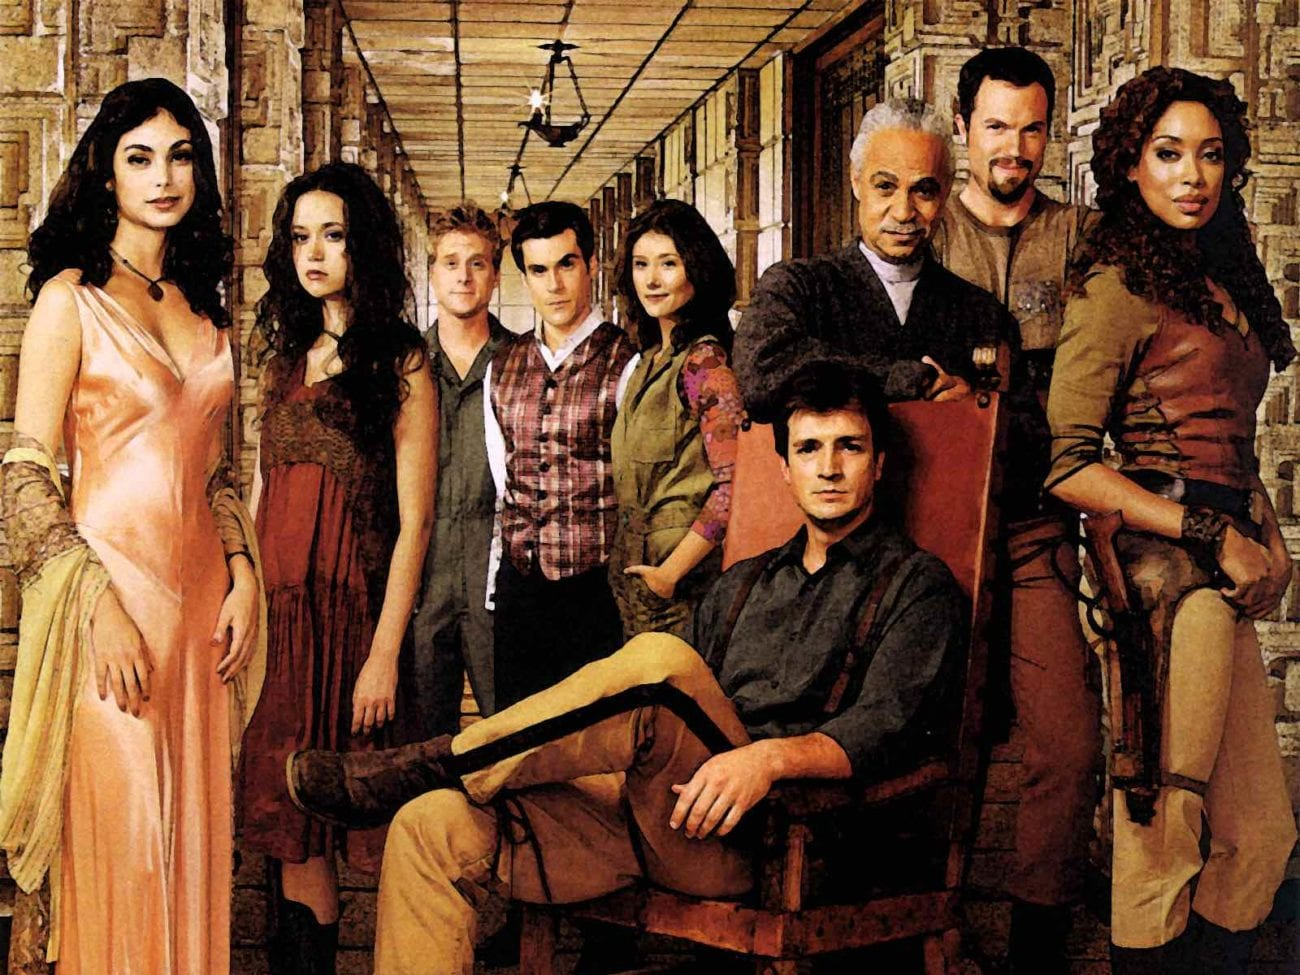 It's only fitting that 'Firefly' find a place in our Best Cancelled Sci-Fi/Fantasy TV Show poll as part of the Bingewatch Awards. Find out exactly why.